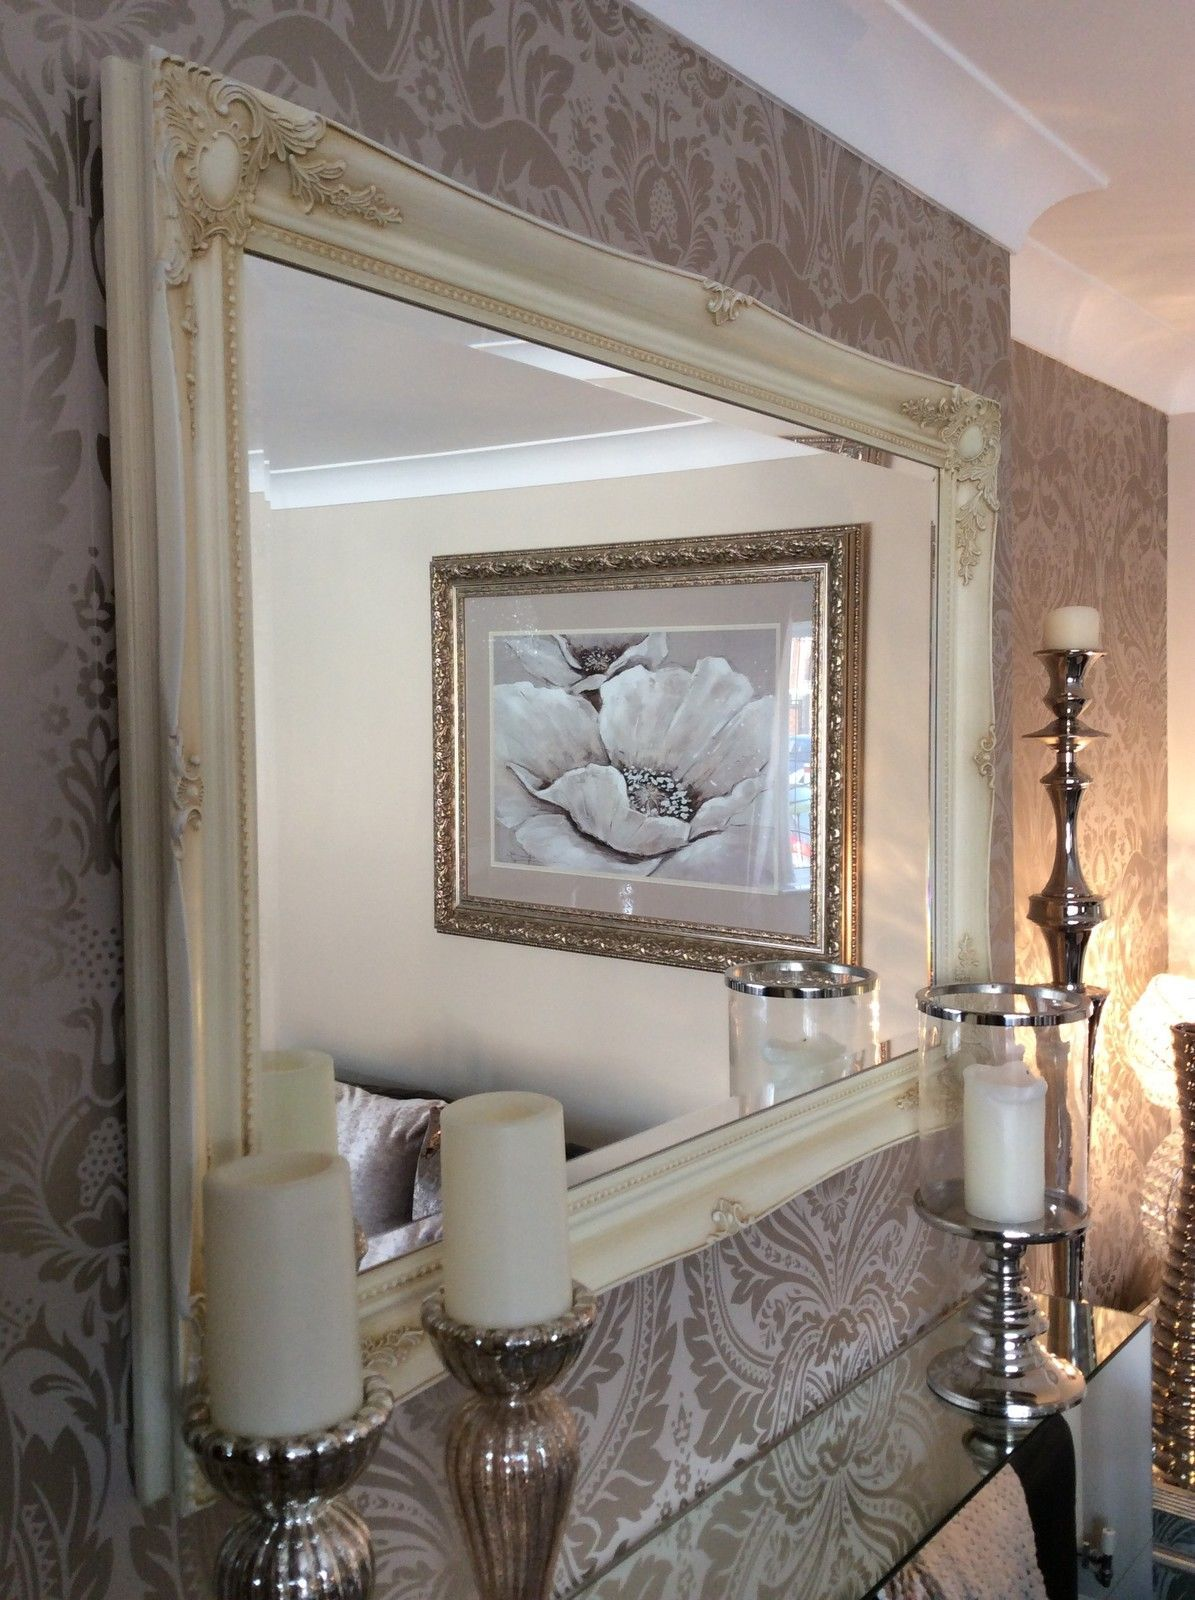 How To Frame A Shirt >> Large Cream Ivory Swept Shabby Chic Mirror - 42inch x 30inch - 107cm x 76cm NEW